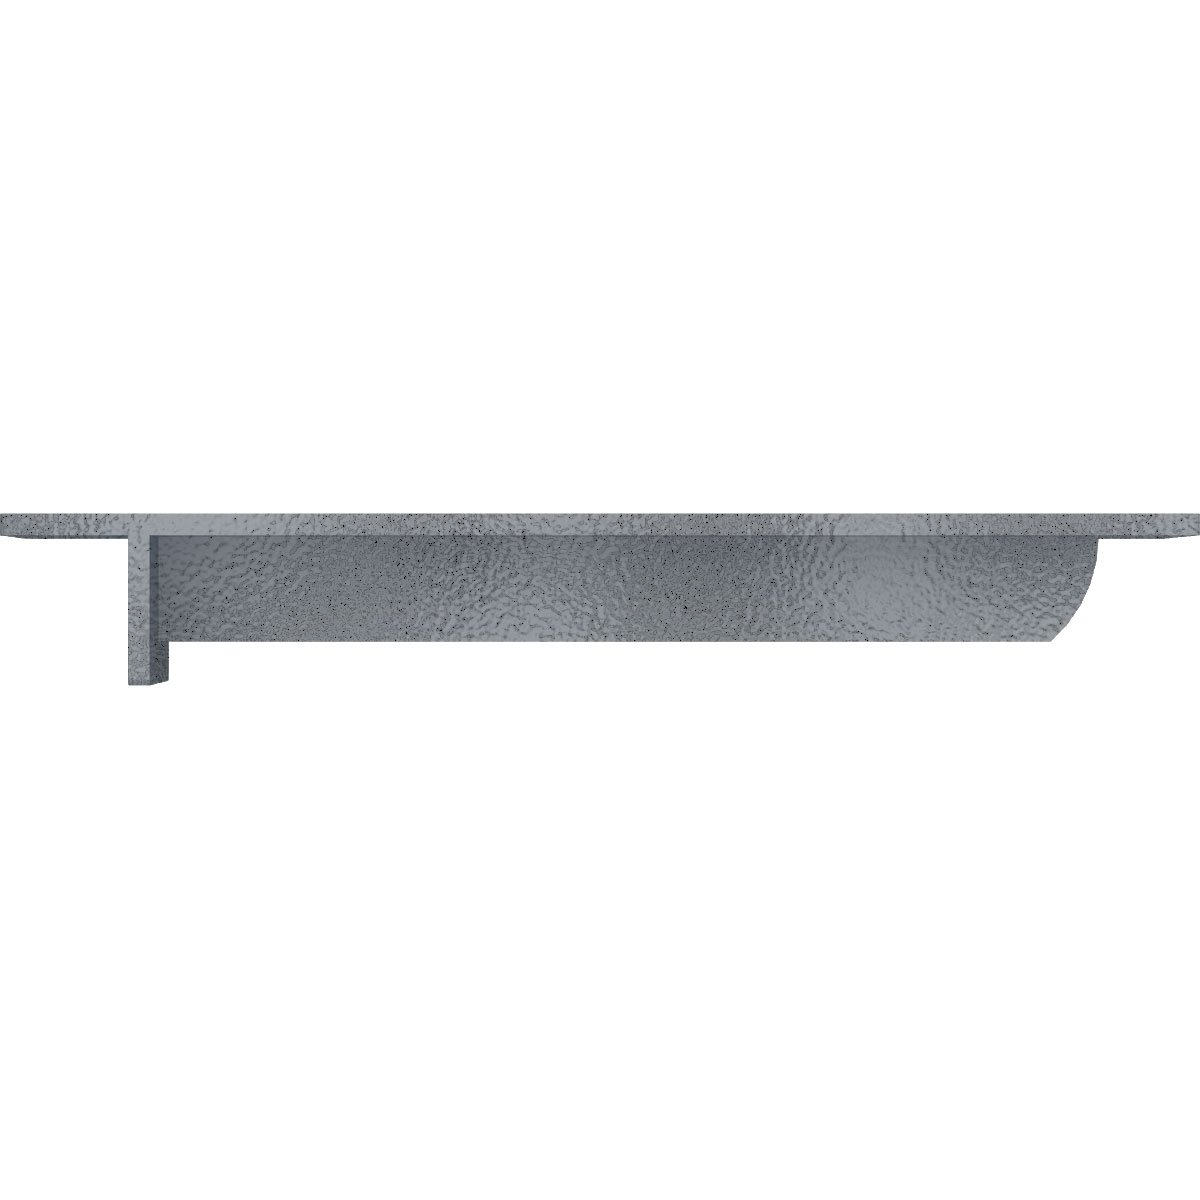 Ekena Millwork BKTM03X10X02HECRS  3-Inch W x 10-Inch D x 2-Inch H Heaton Hidden Support Bracket with 6-Inch Support Depth Steel